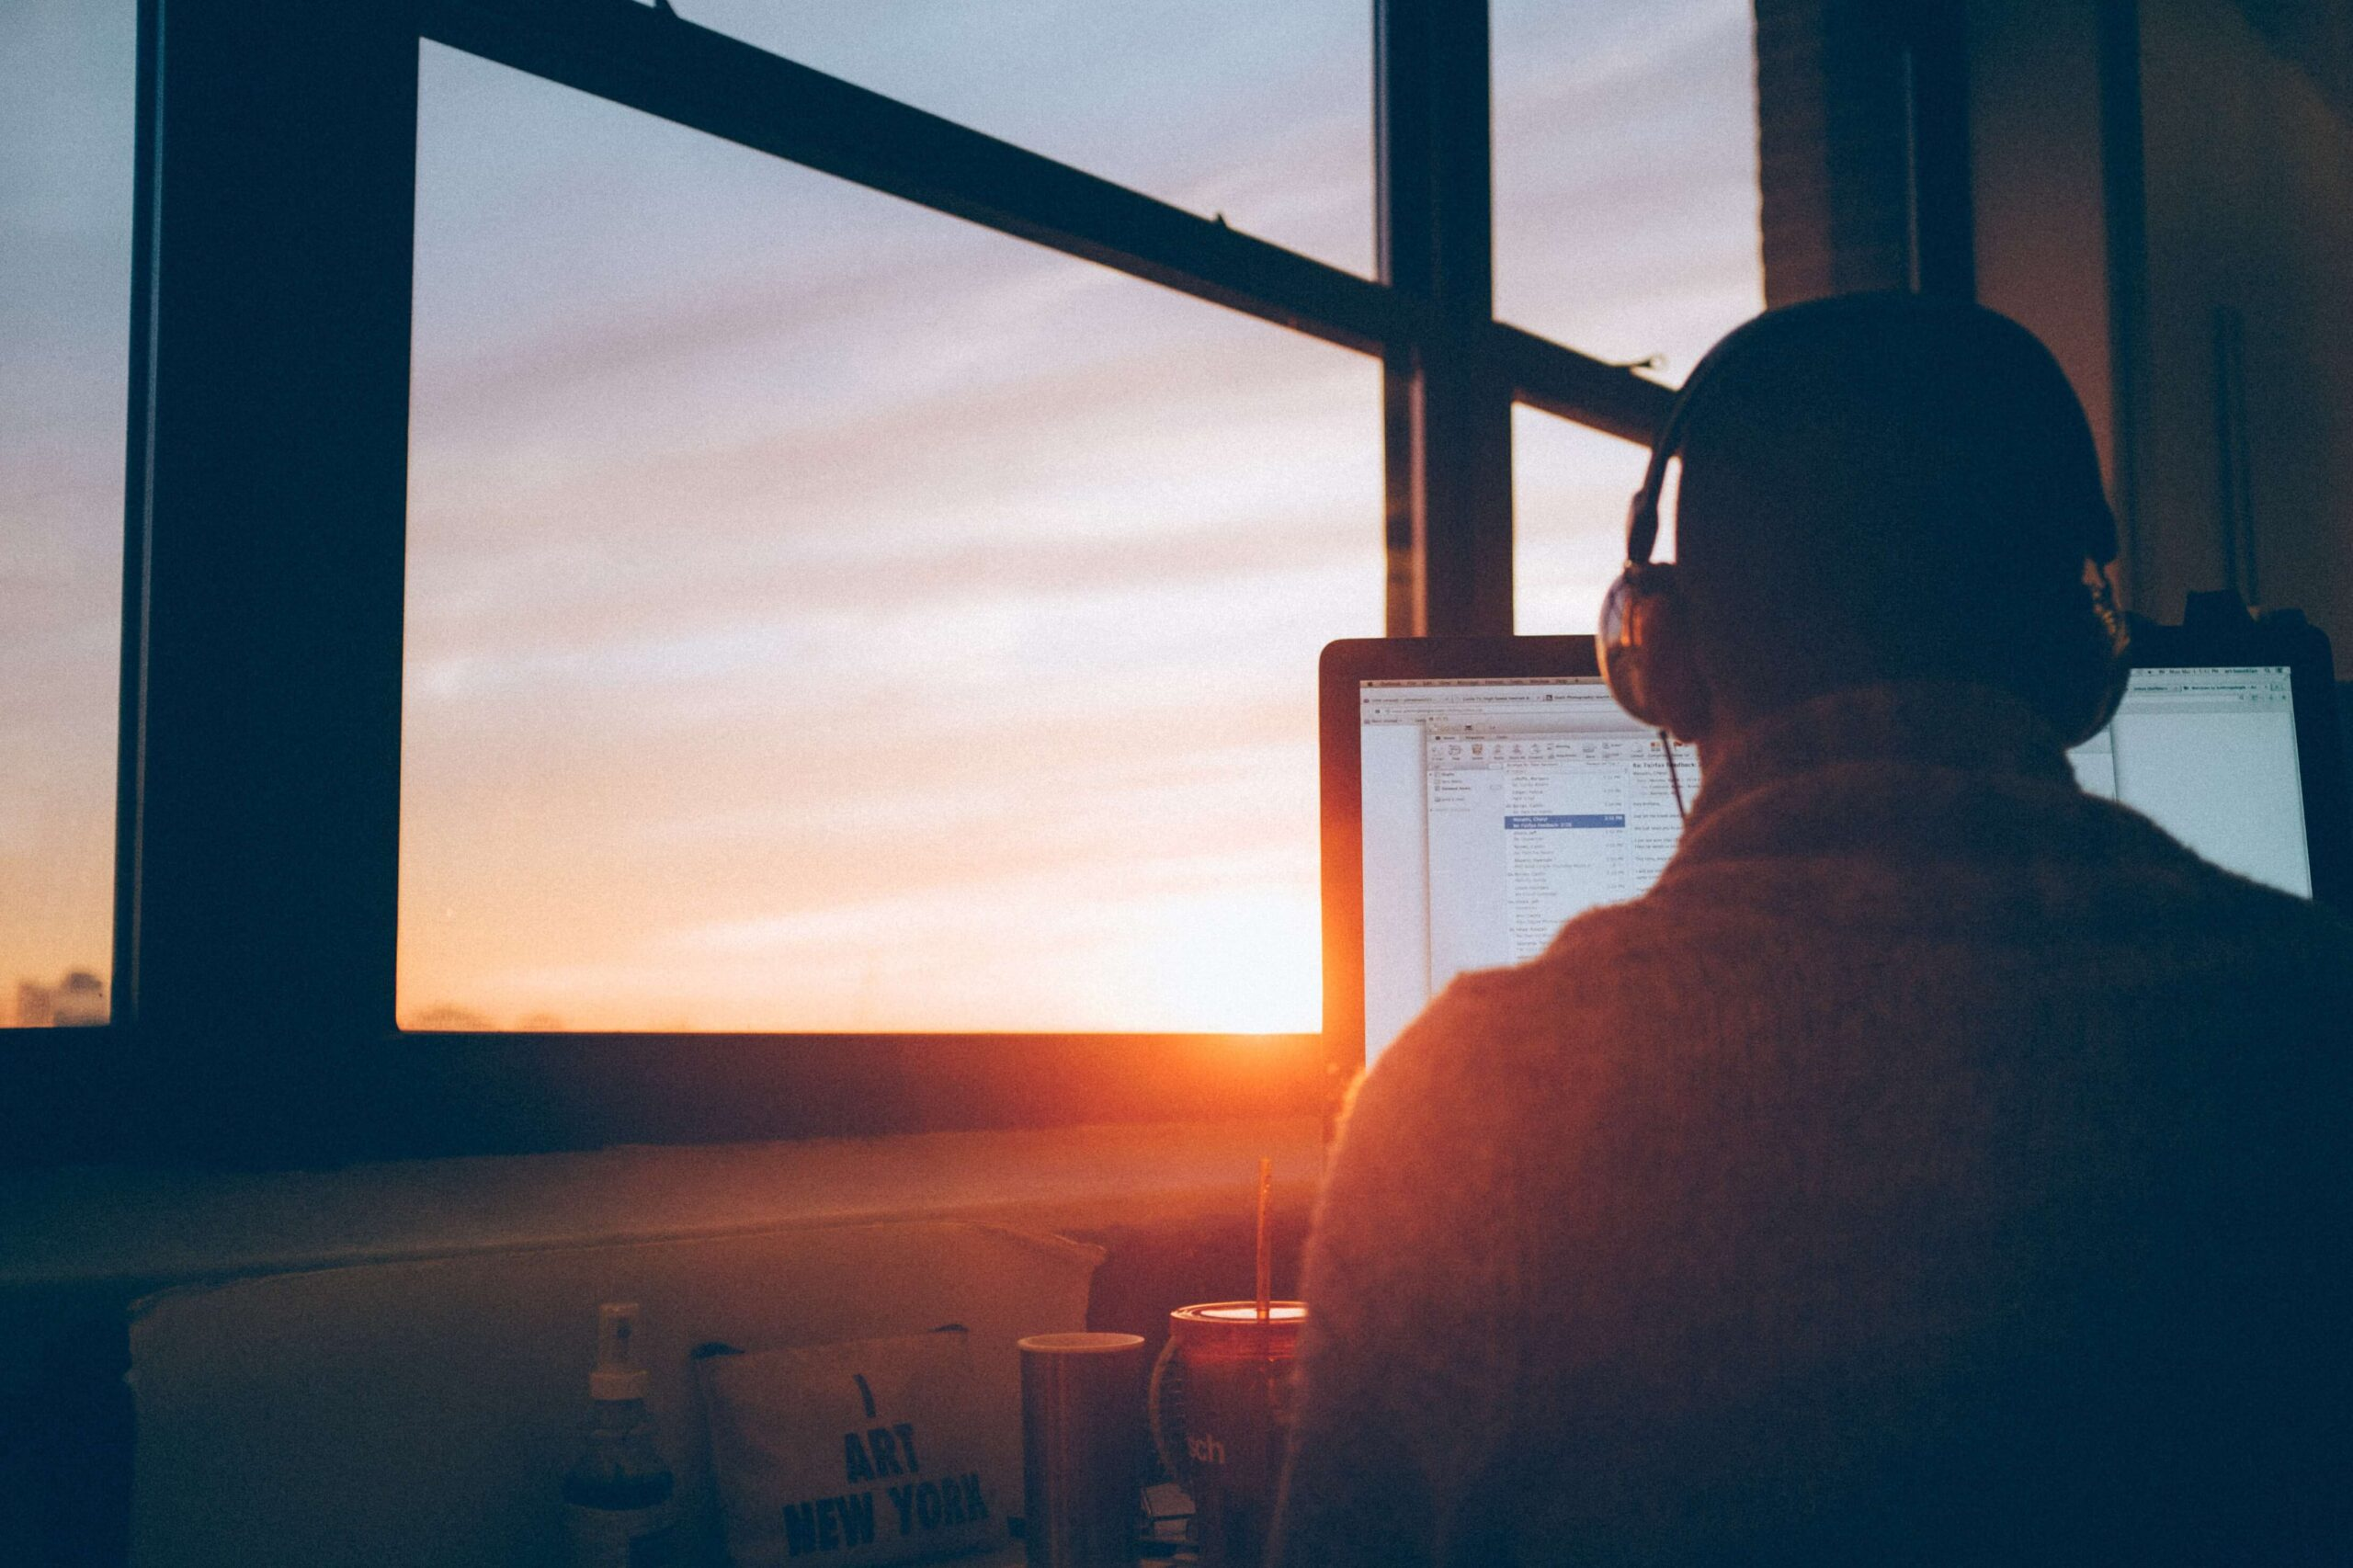 man with back to computer screen facing window with sunset conducting masterclass on How to invest in real estate the safe and easy way even if you don't have a lot of money